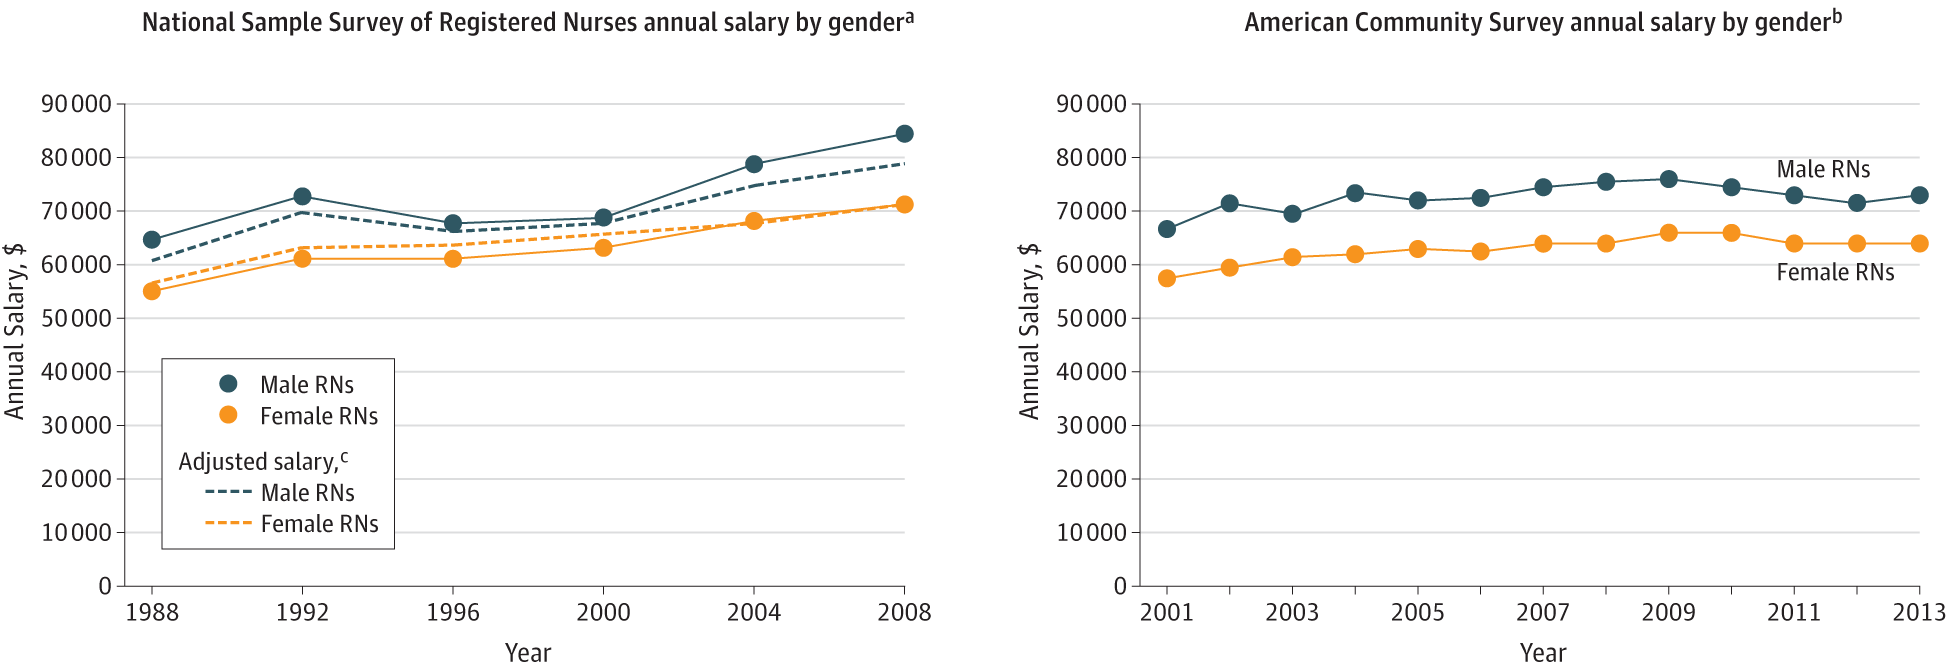 Salary Differences Between Male And Female Registered Nurses In The